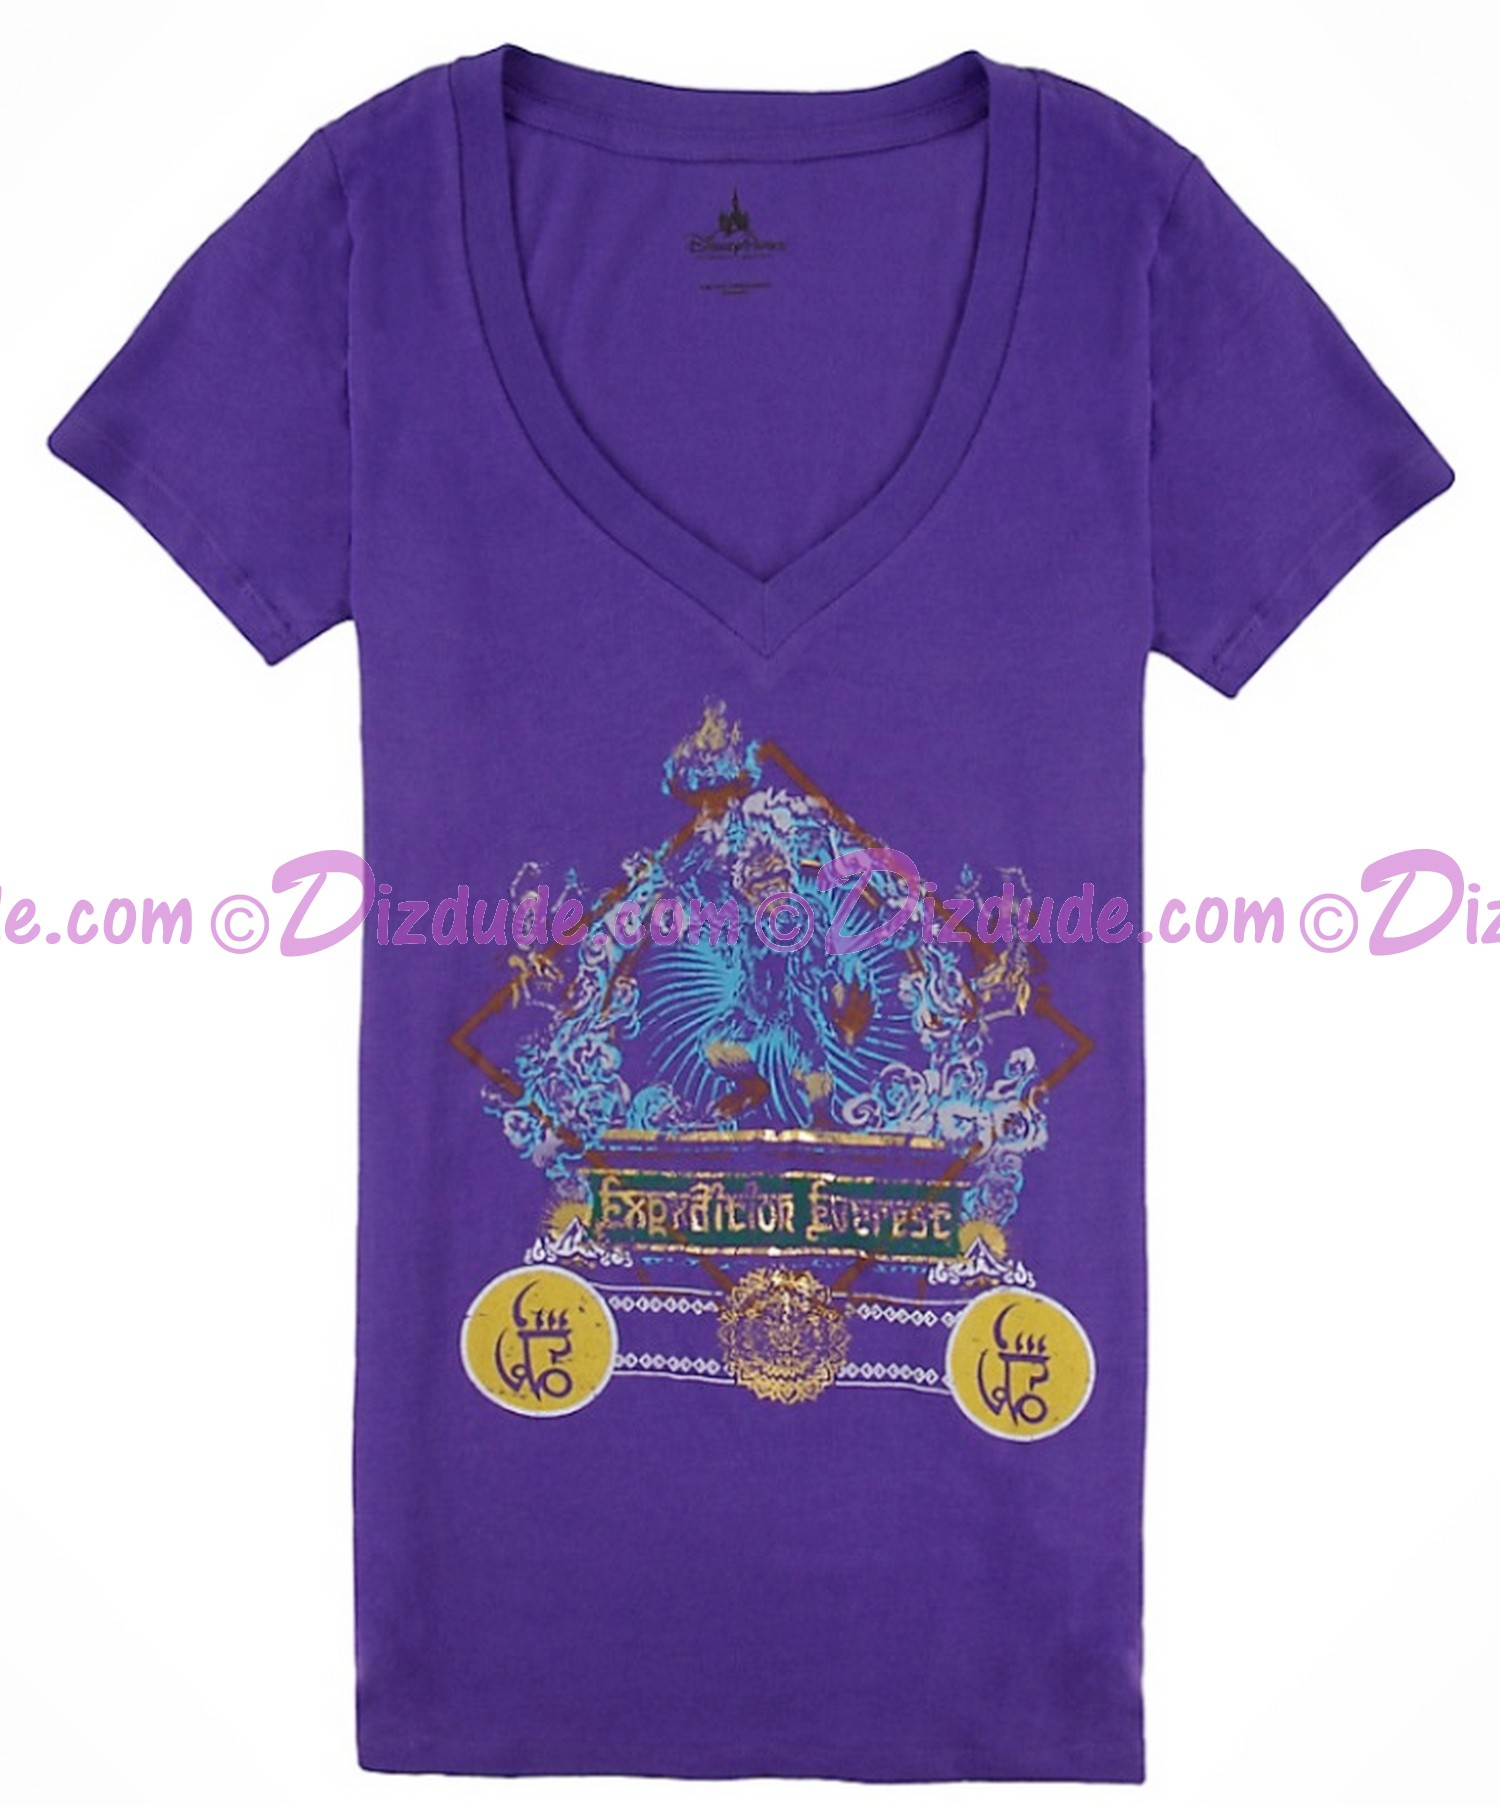 (OUT OF STOCK) Expedition Everest V-Neck Purple Adult T-Shirt (Tee, Tshirt or T shirt) ~ Disney Animal Kingdoms